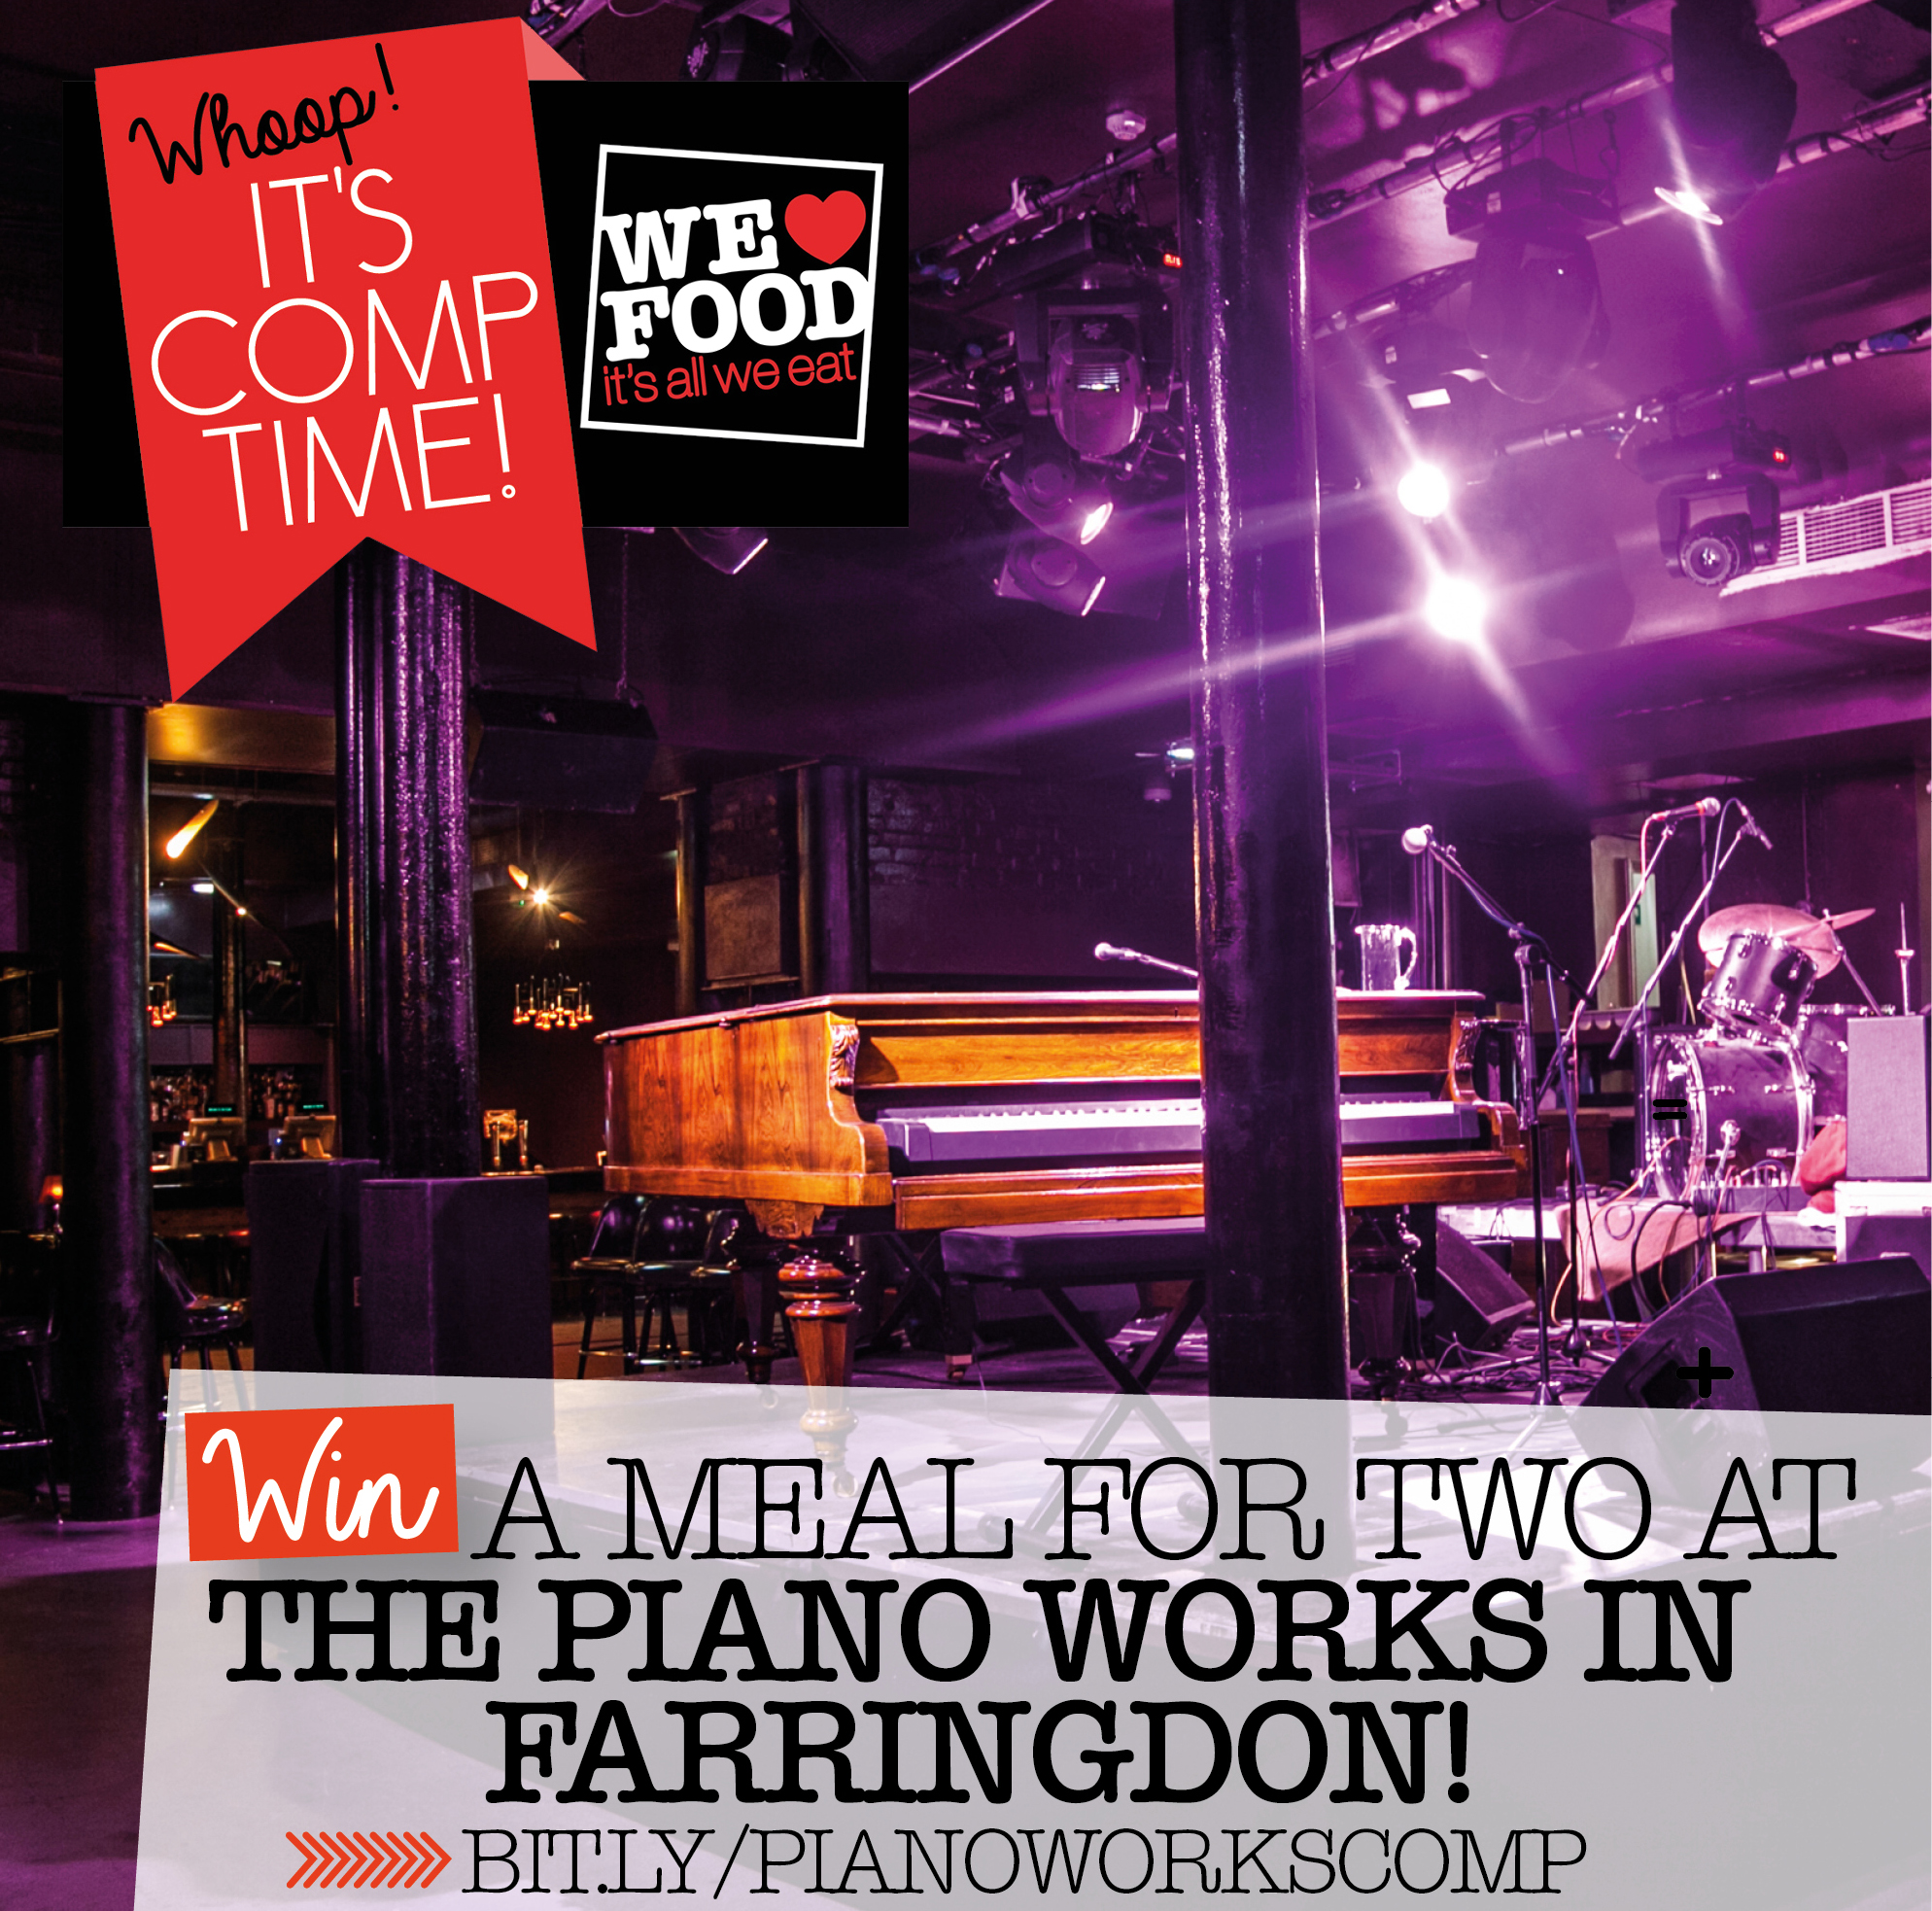 PIANO WORKS COMP | WE LOVE FOOD, IT'S ALL WE EAT